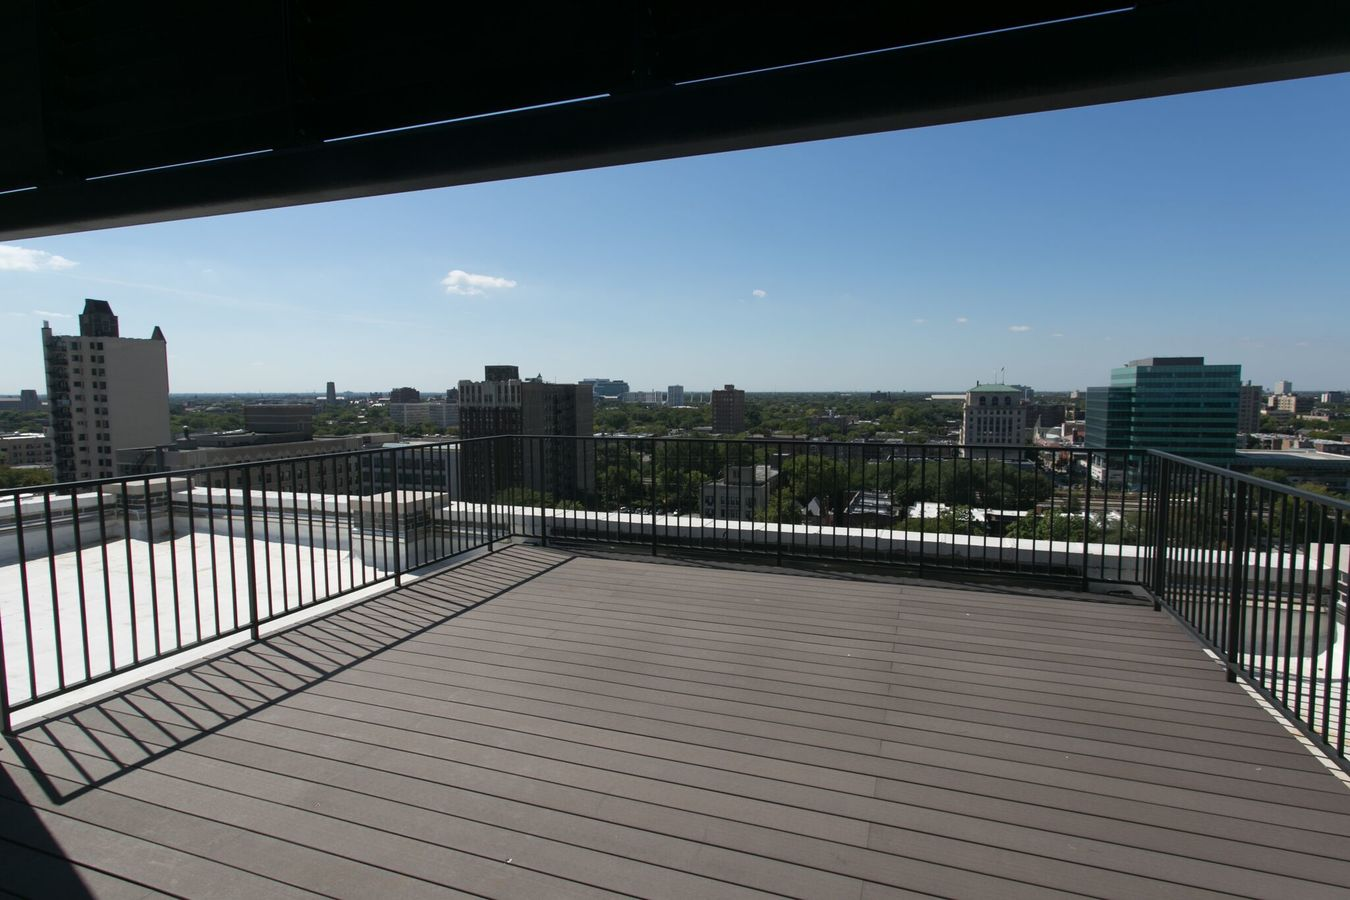 2 Bedrooms 2 Bathrooms Apartment for rent at The Del Prado in Chicago, IL